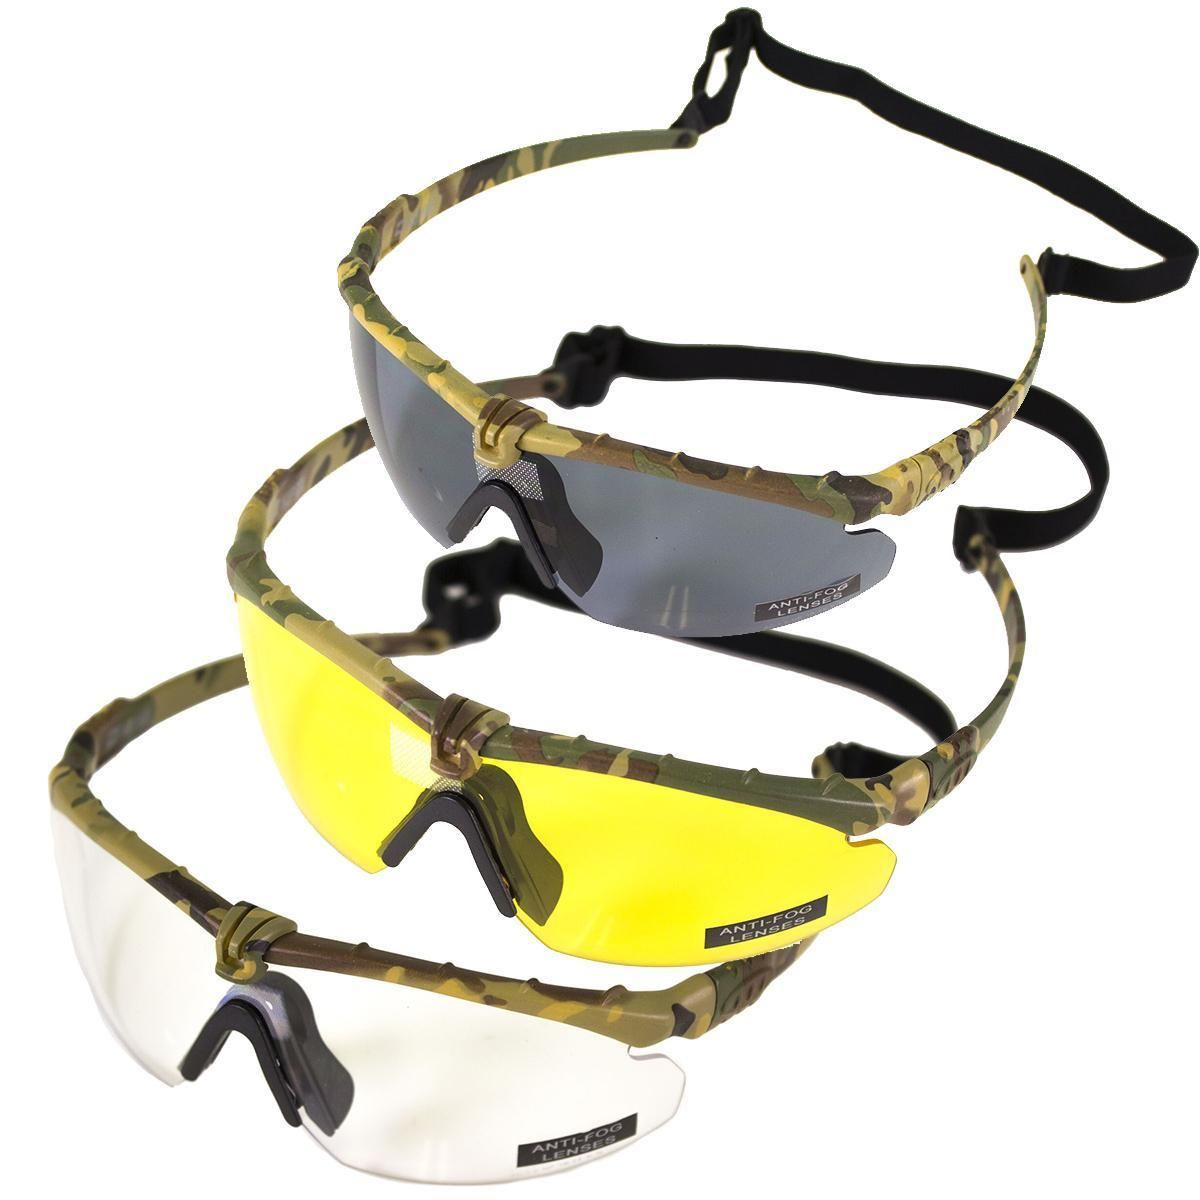 9fb48d76308 nuprol-airsoft-battle-pro-safety-glasses-eye-protection-camo-frame -colours-21794-p.jpg